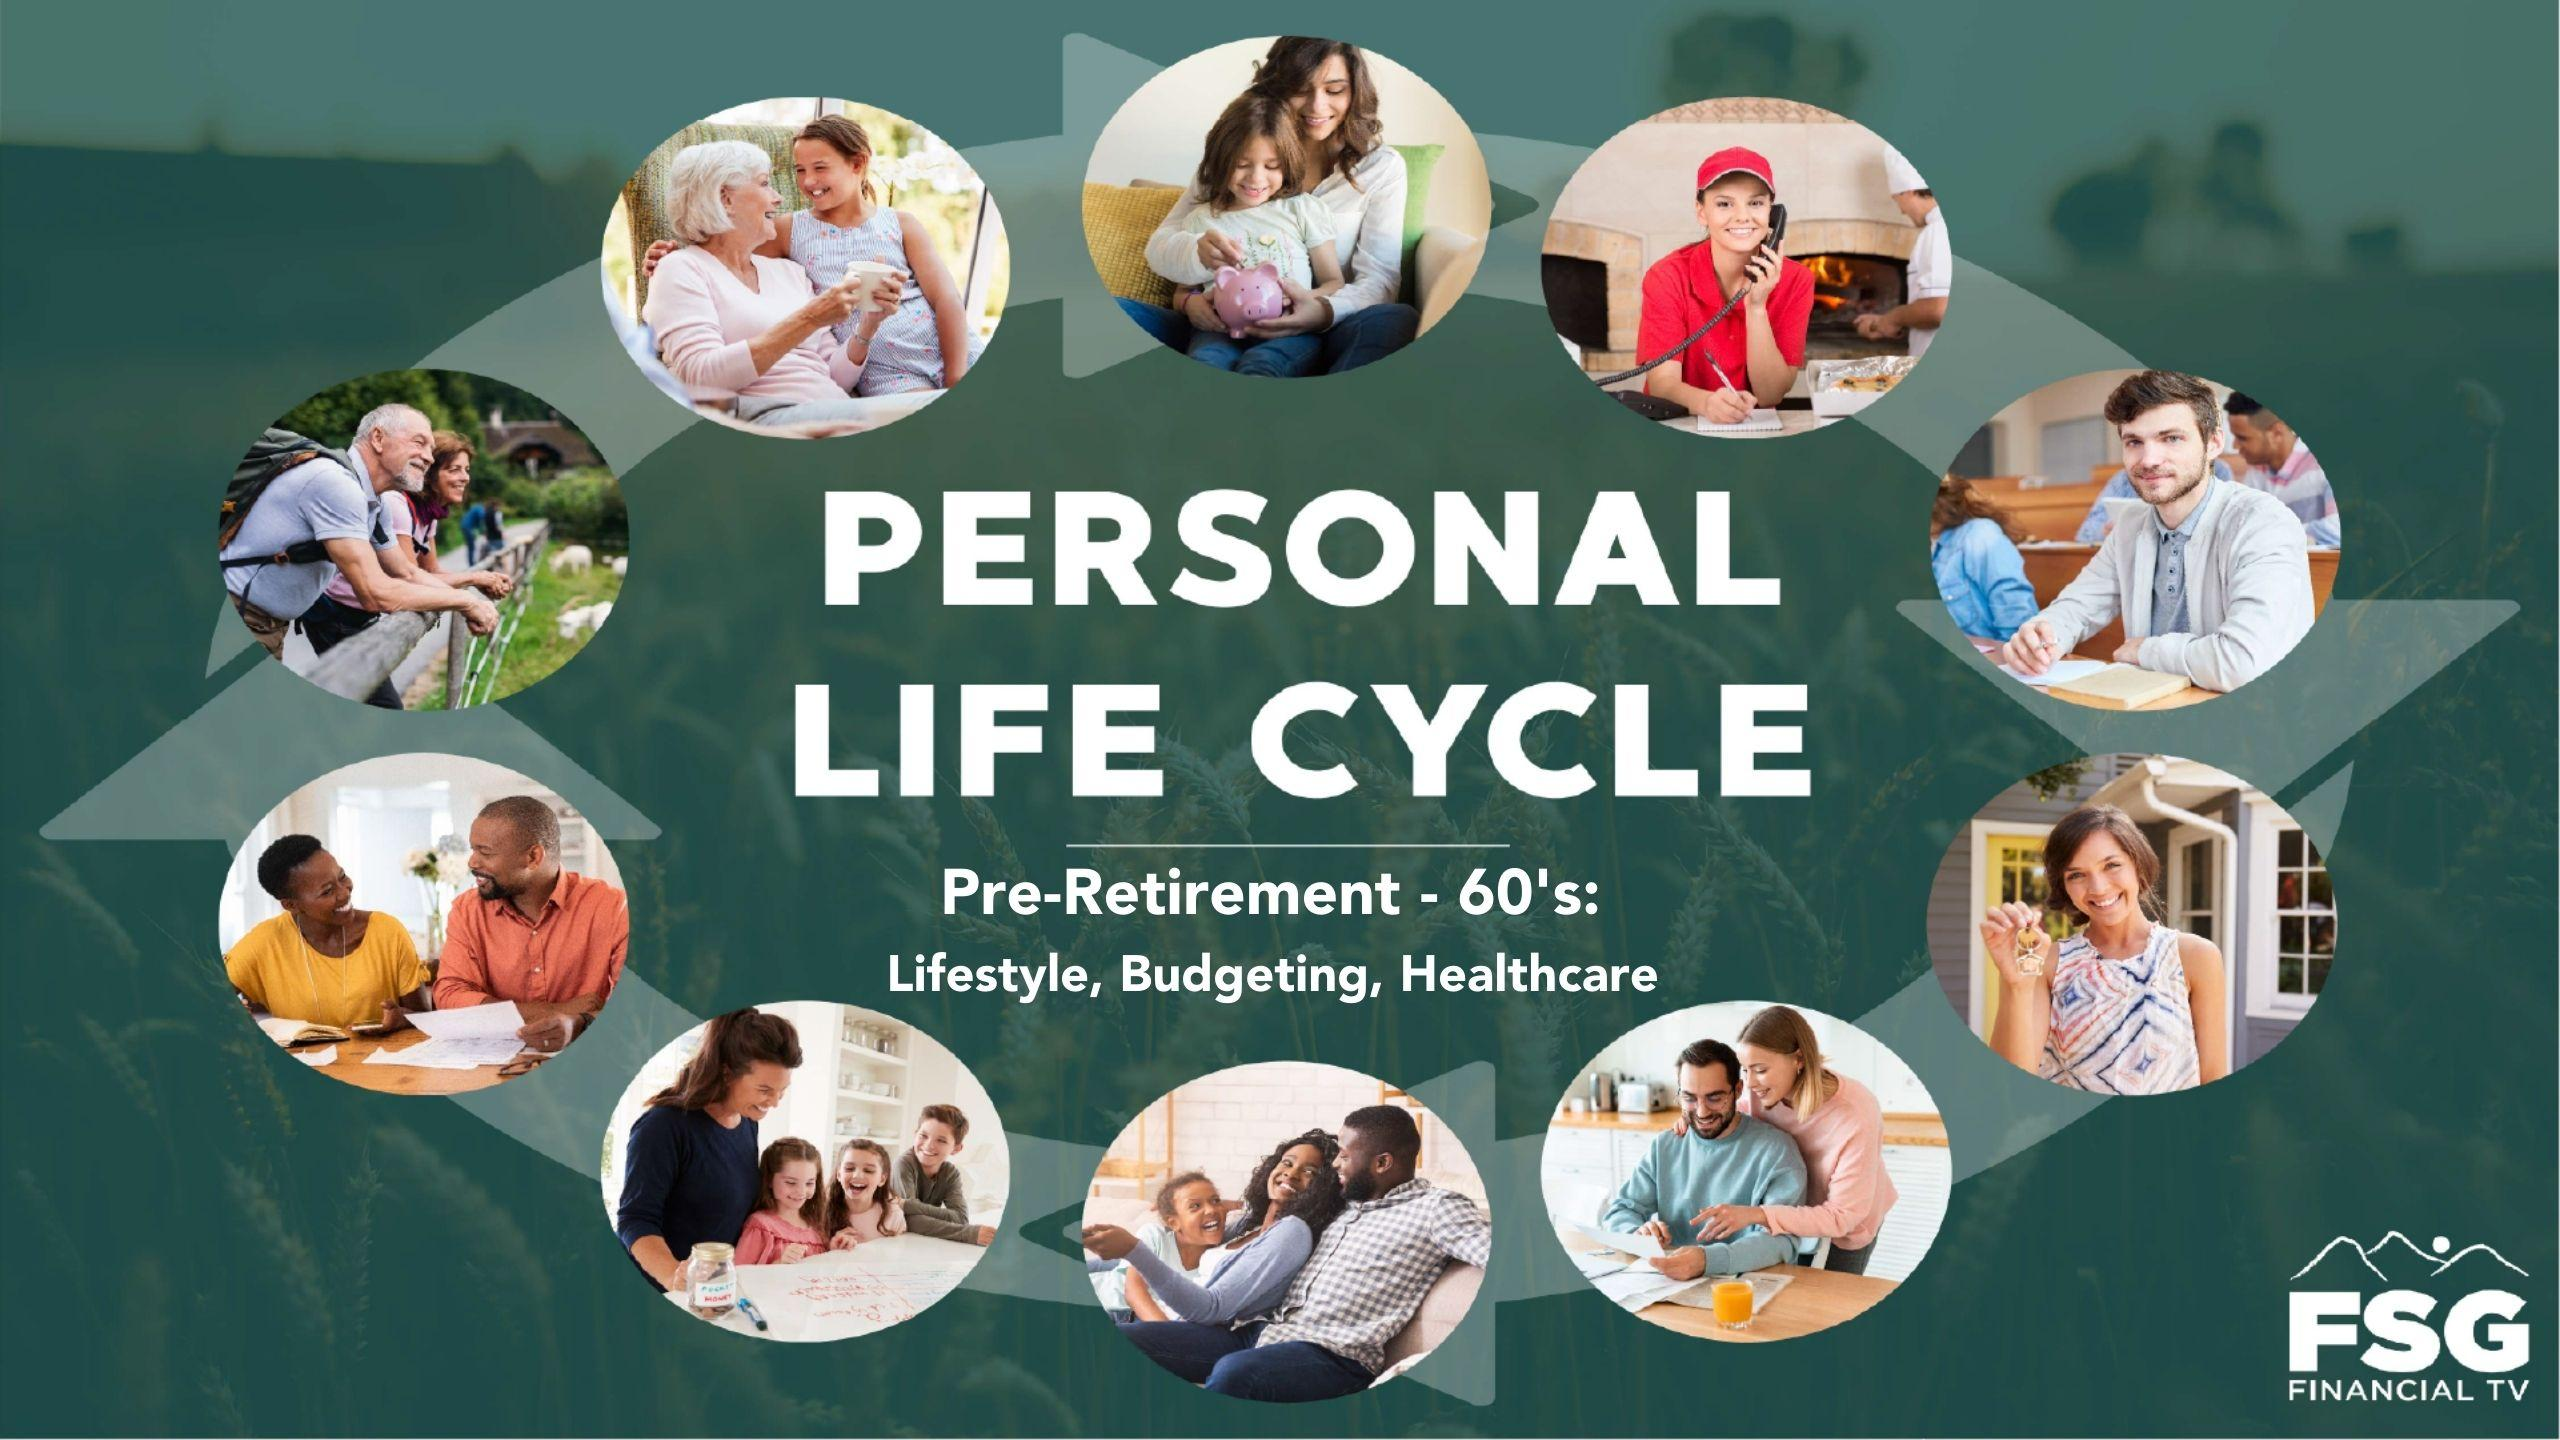 Personal Life Cycle: Pre-Retirement- 60's: Lifestyle, Budgeting, Healthcare Thumbnail